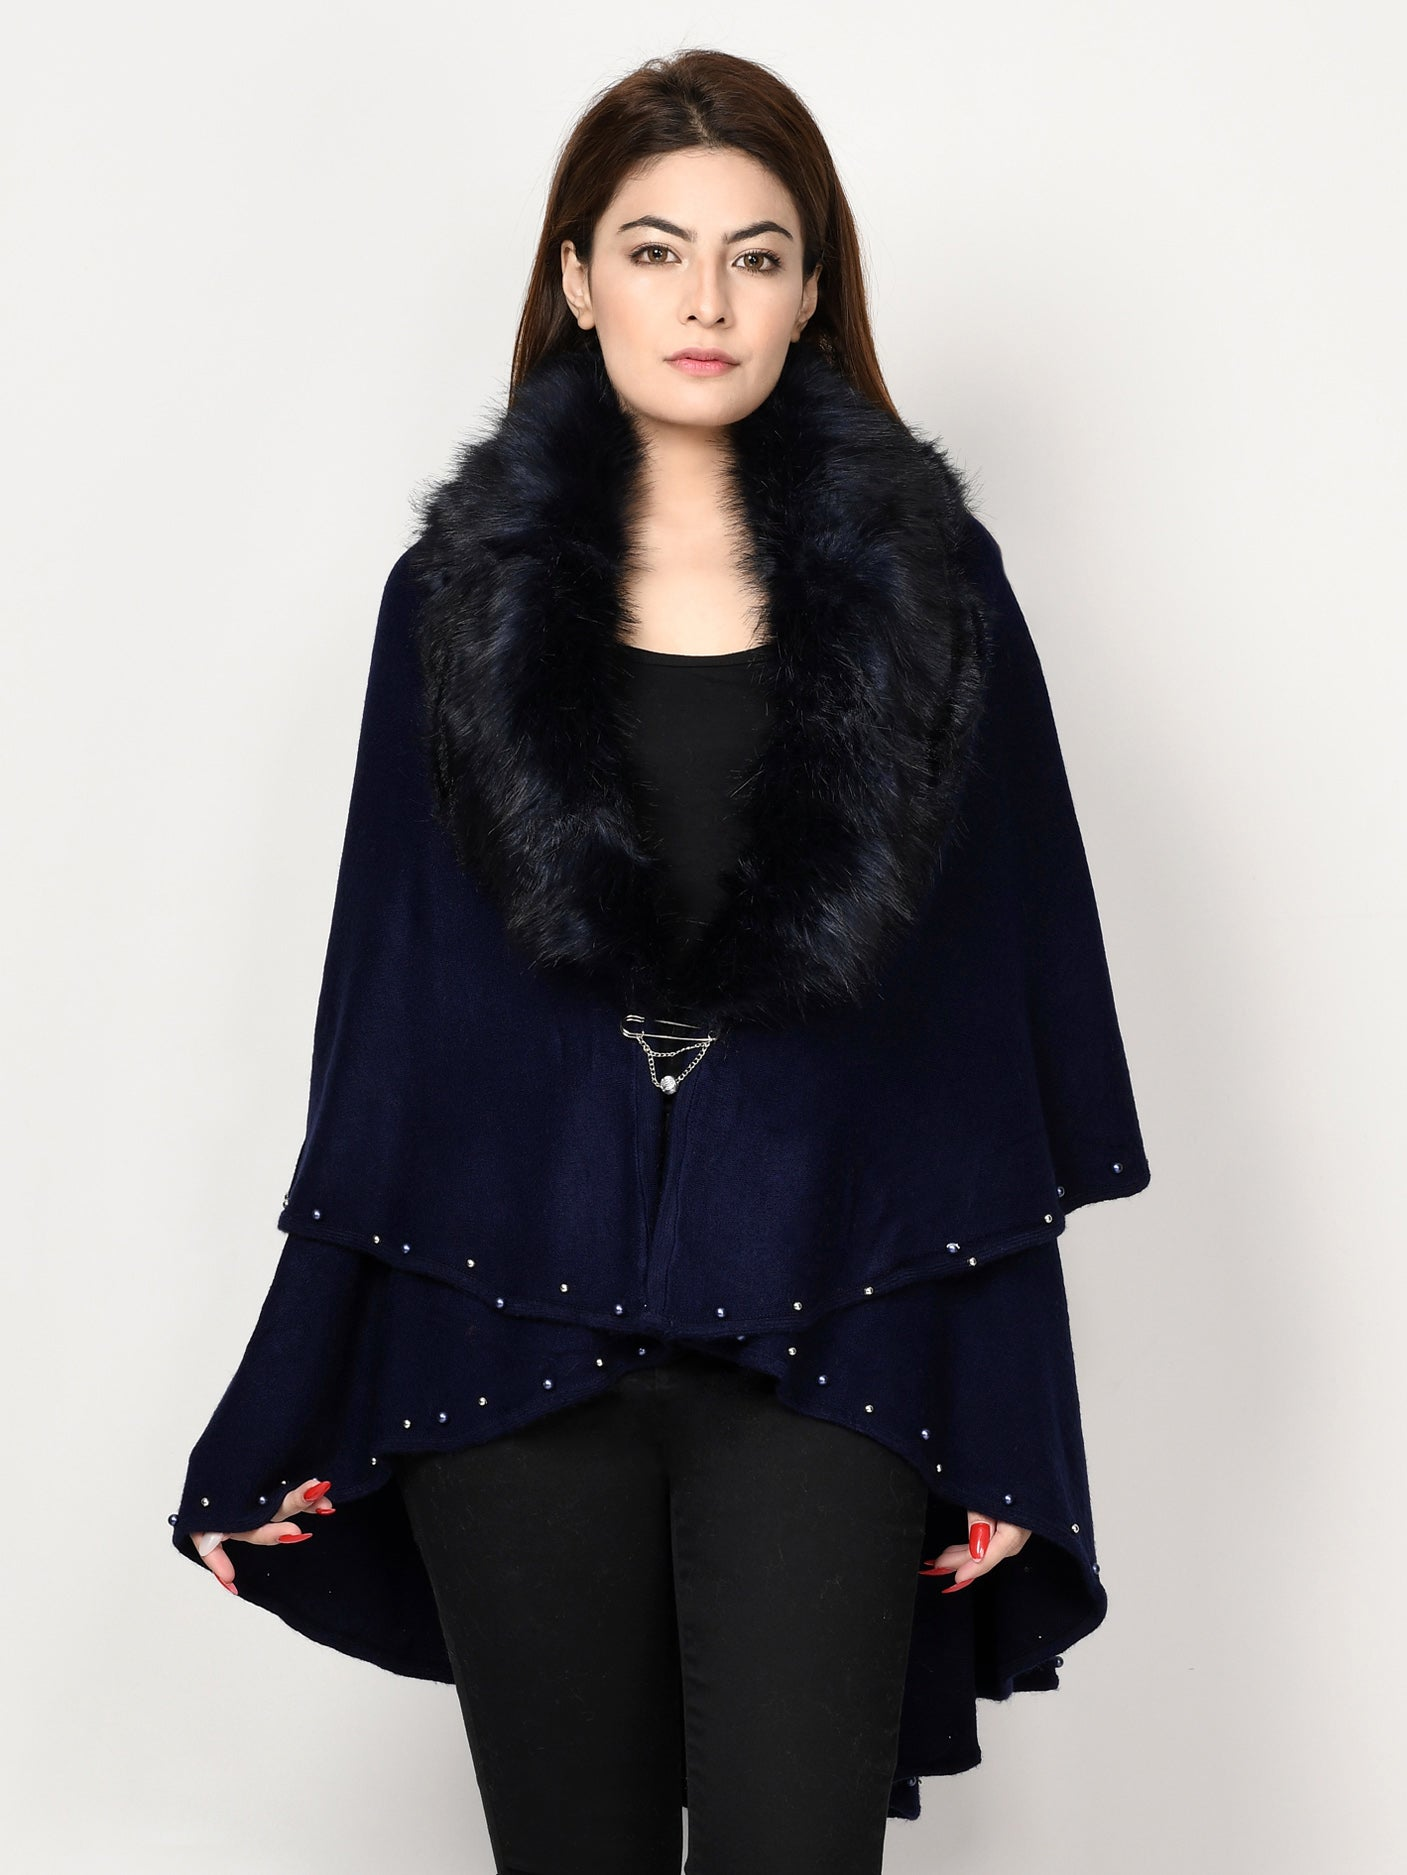 Limelight Online Beaded Fur Cape Shawl CPS60-FRE-BLK